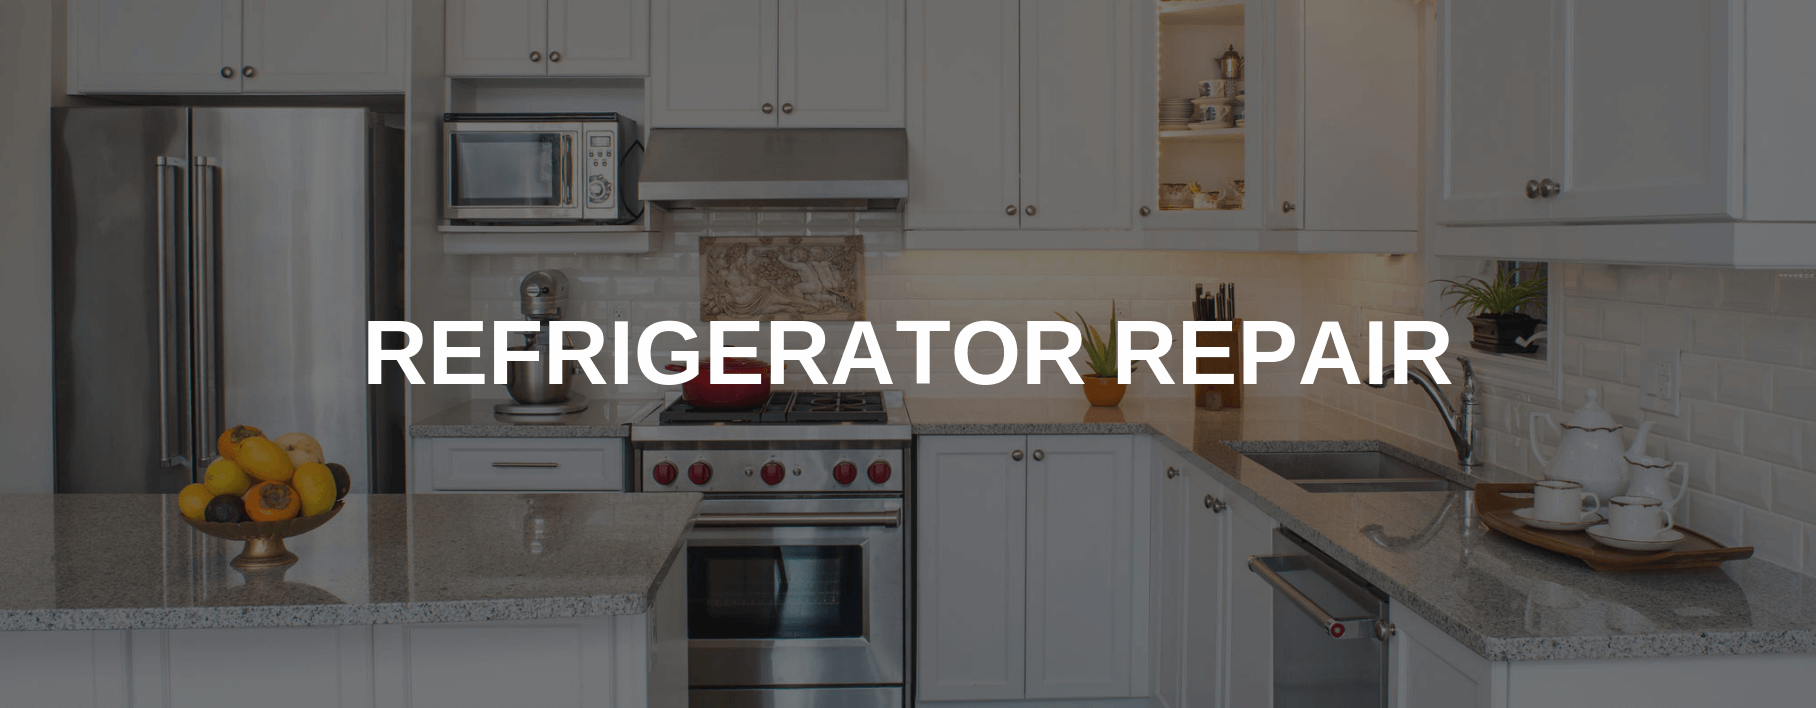 fort worth refrigerator repair